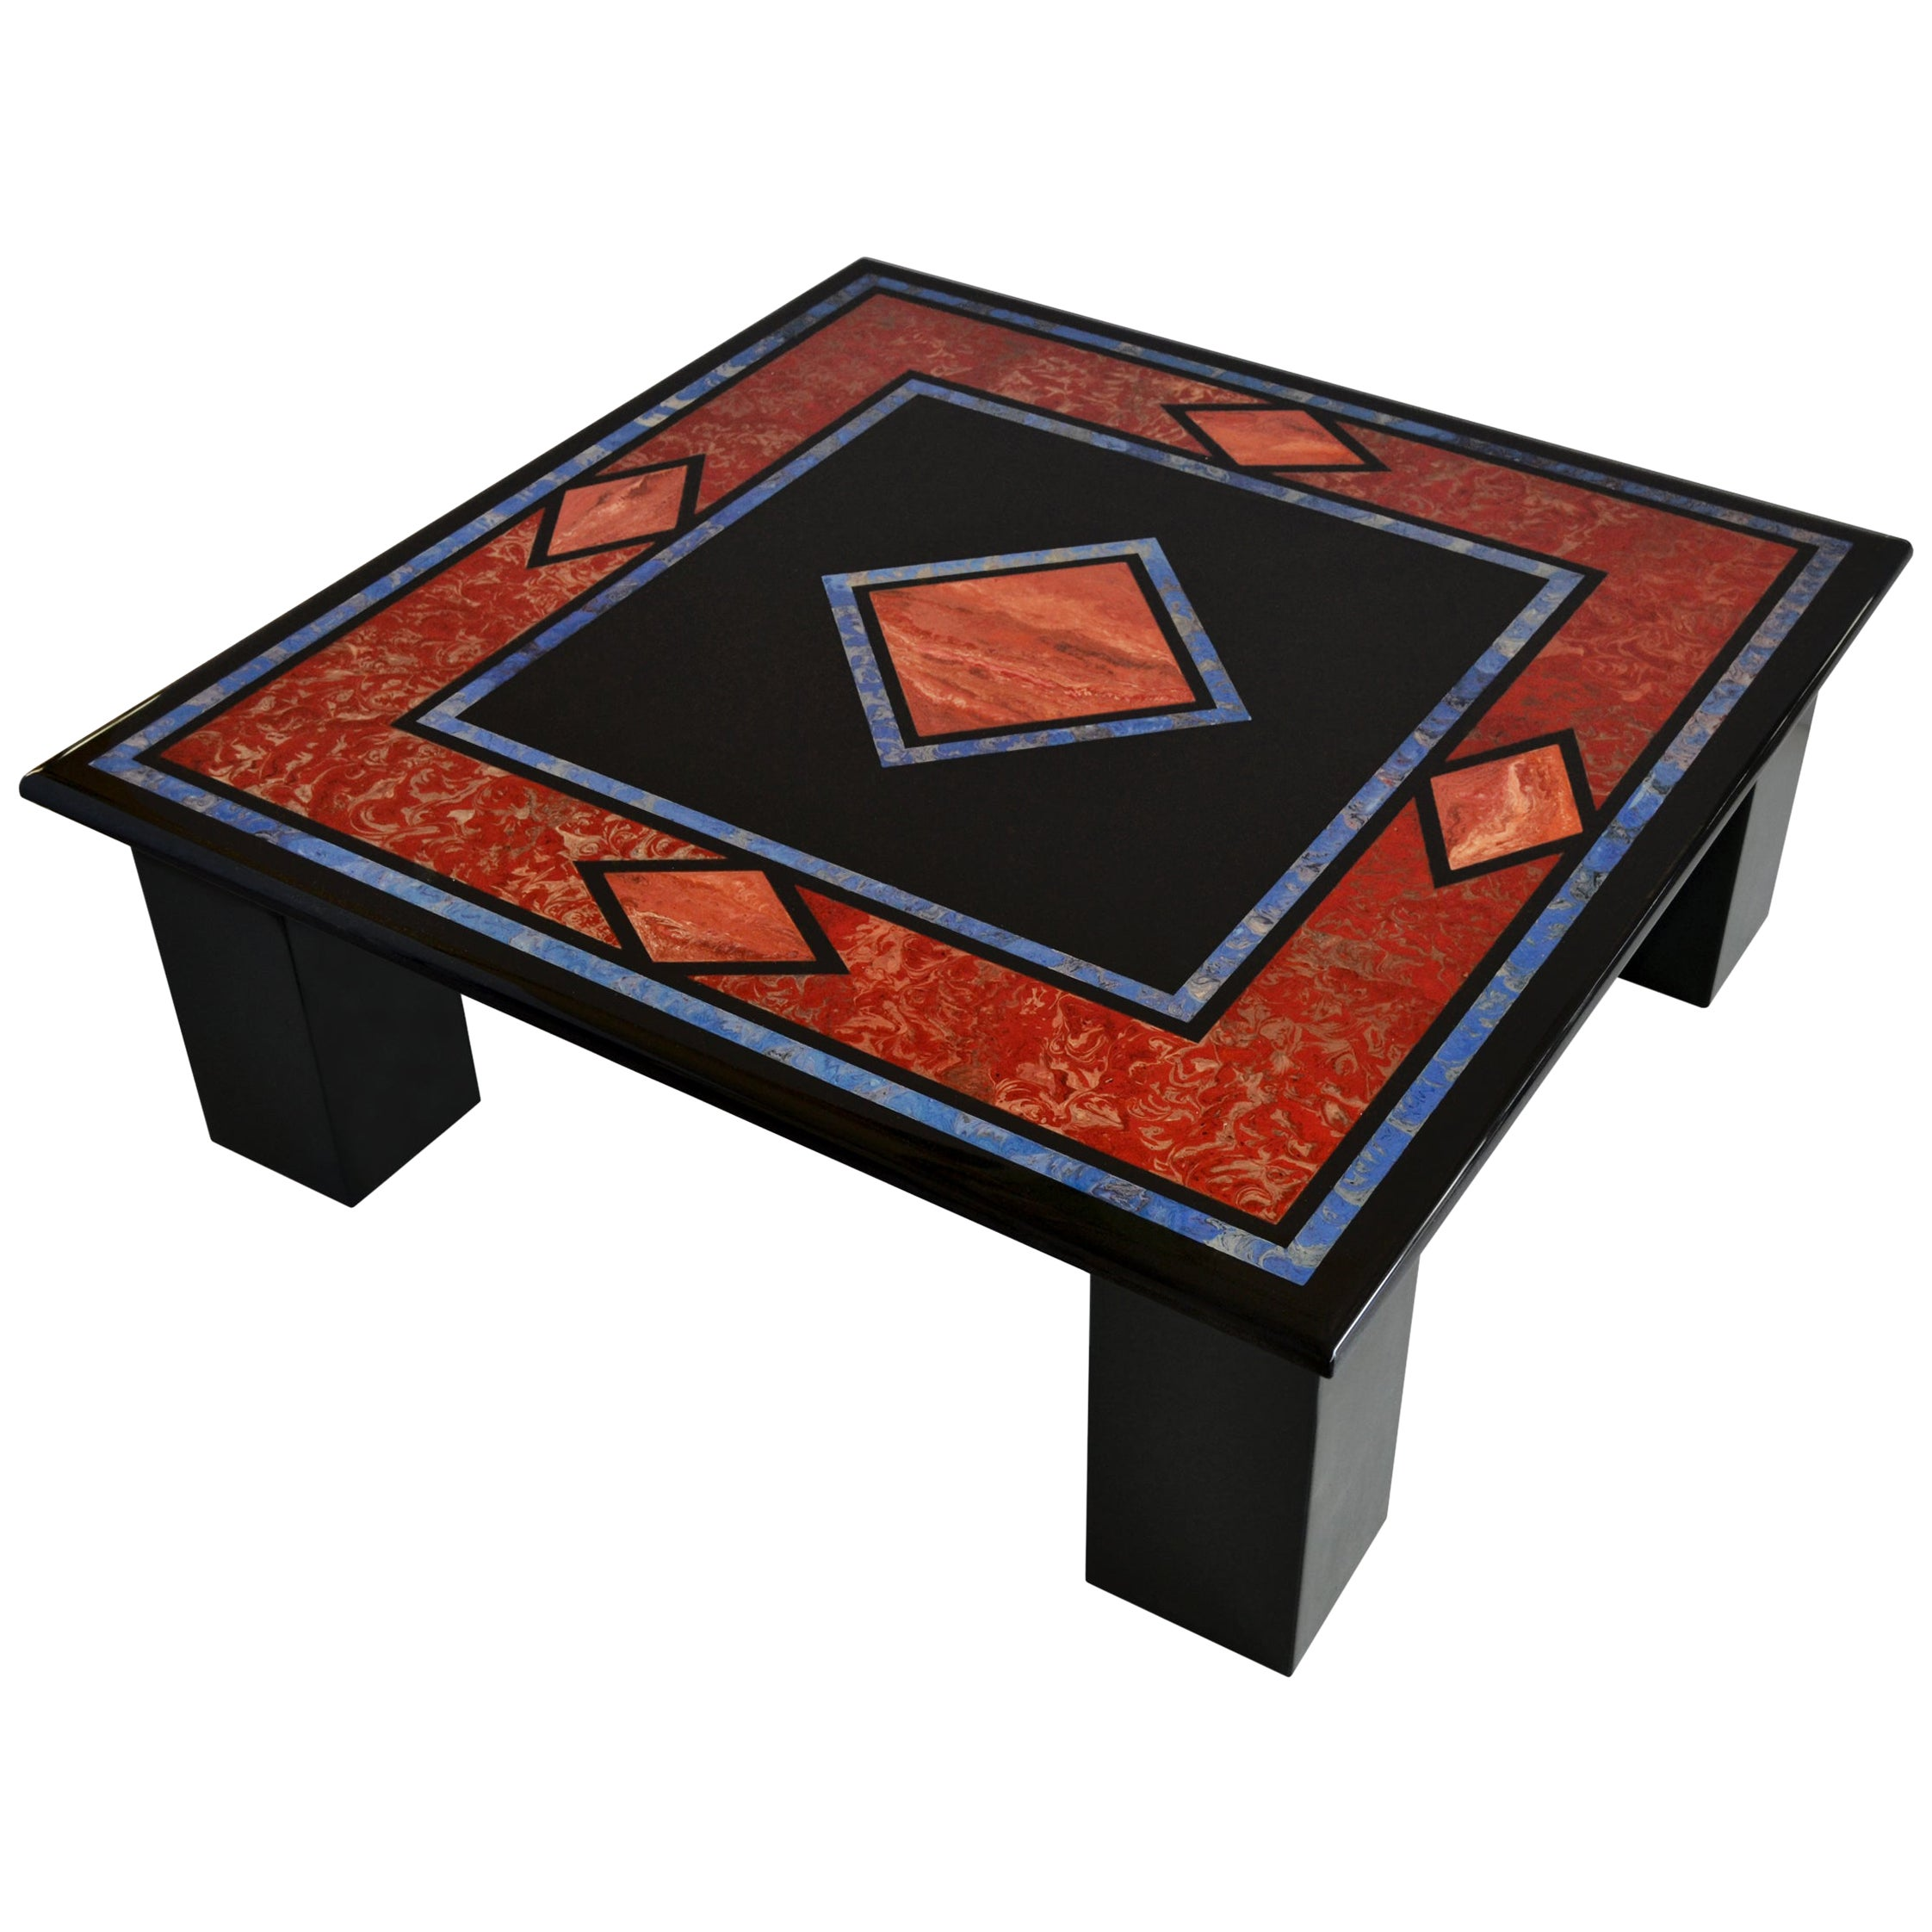 Black Square Coffee Table Inlaid Slate Top Four Slate Columns Handmade in Italy